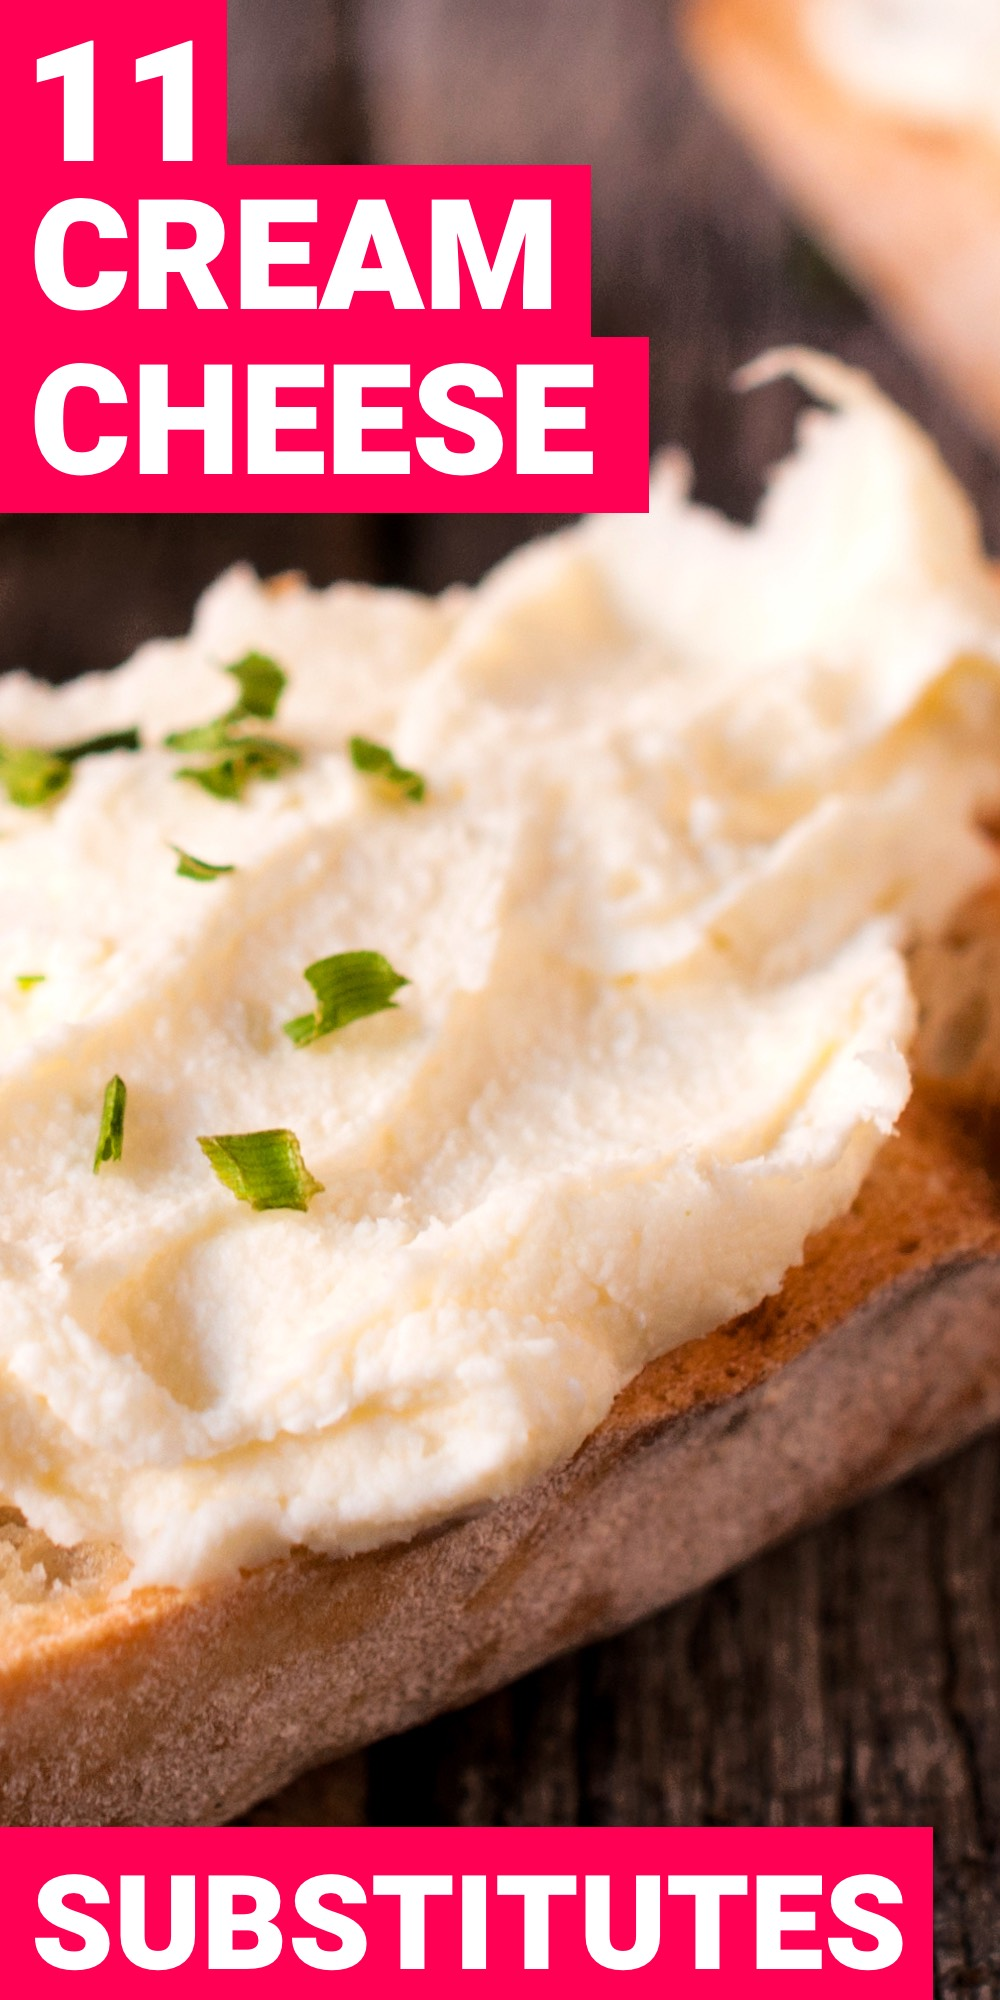 Cream cheese substitutes can be hard to come by. Here are 11 cream cheese substitutes that everyone can use.